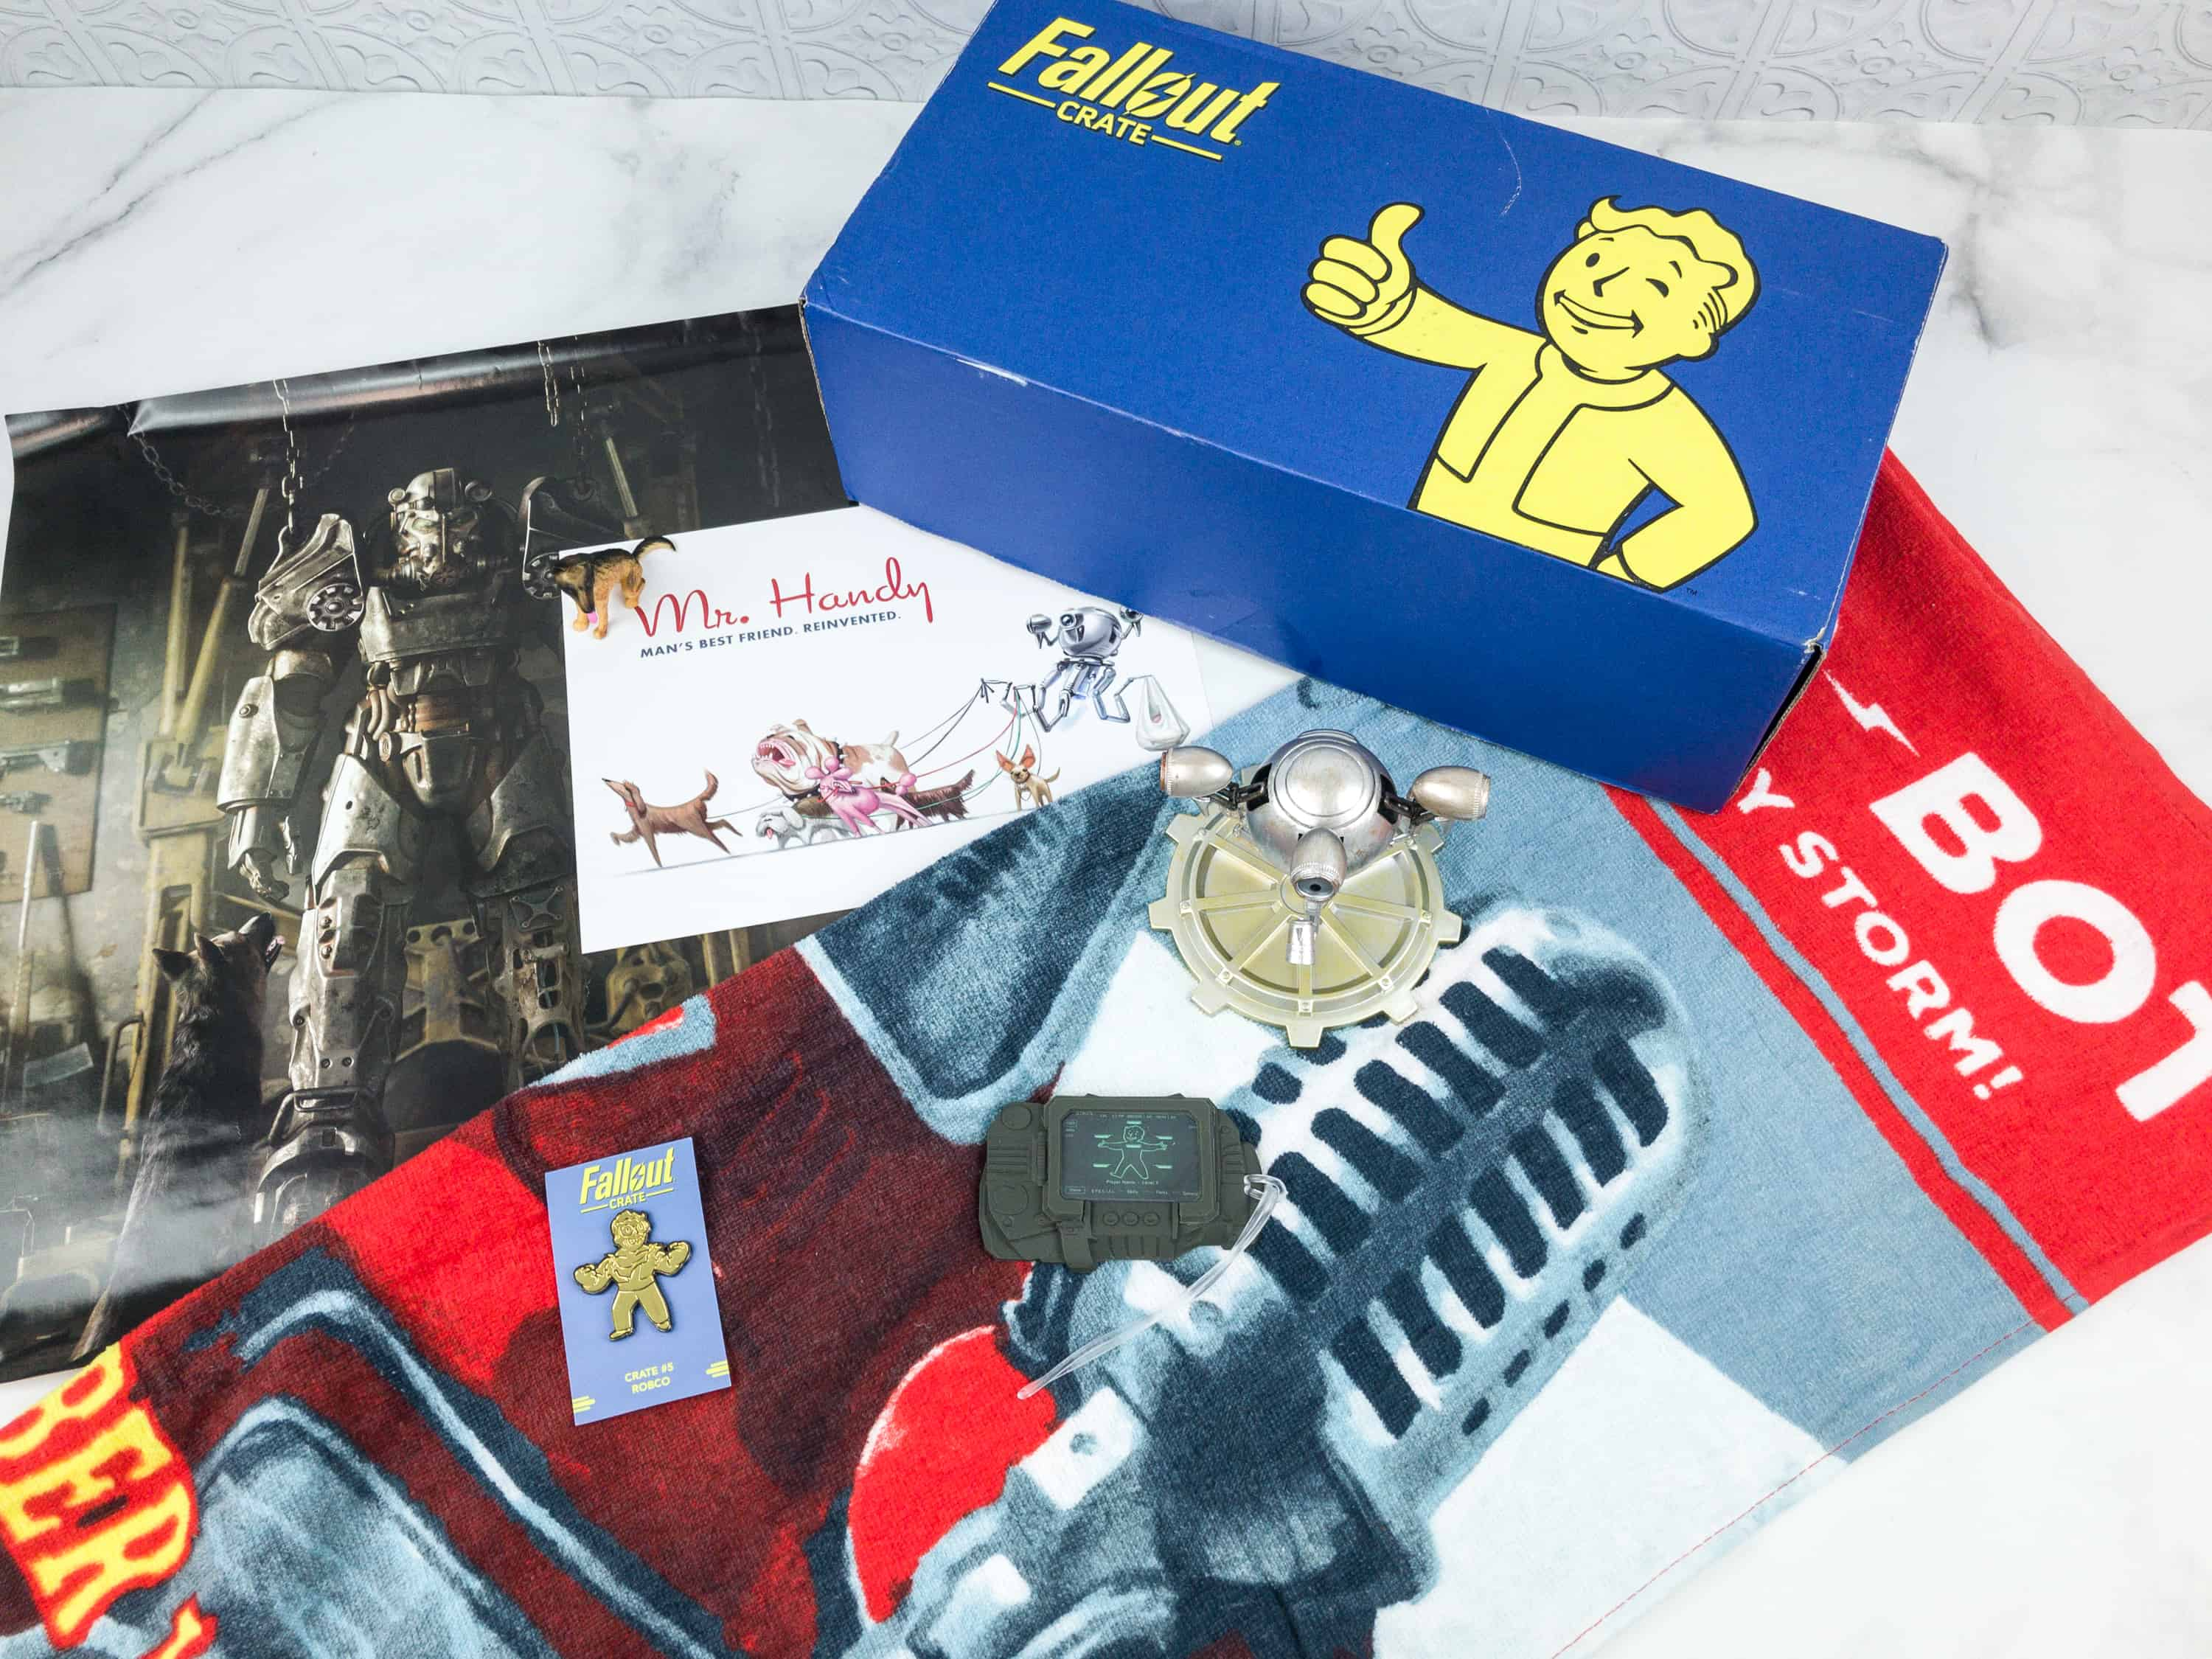 Loot Crate Fallout Crate August 2018 Review + Coupon